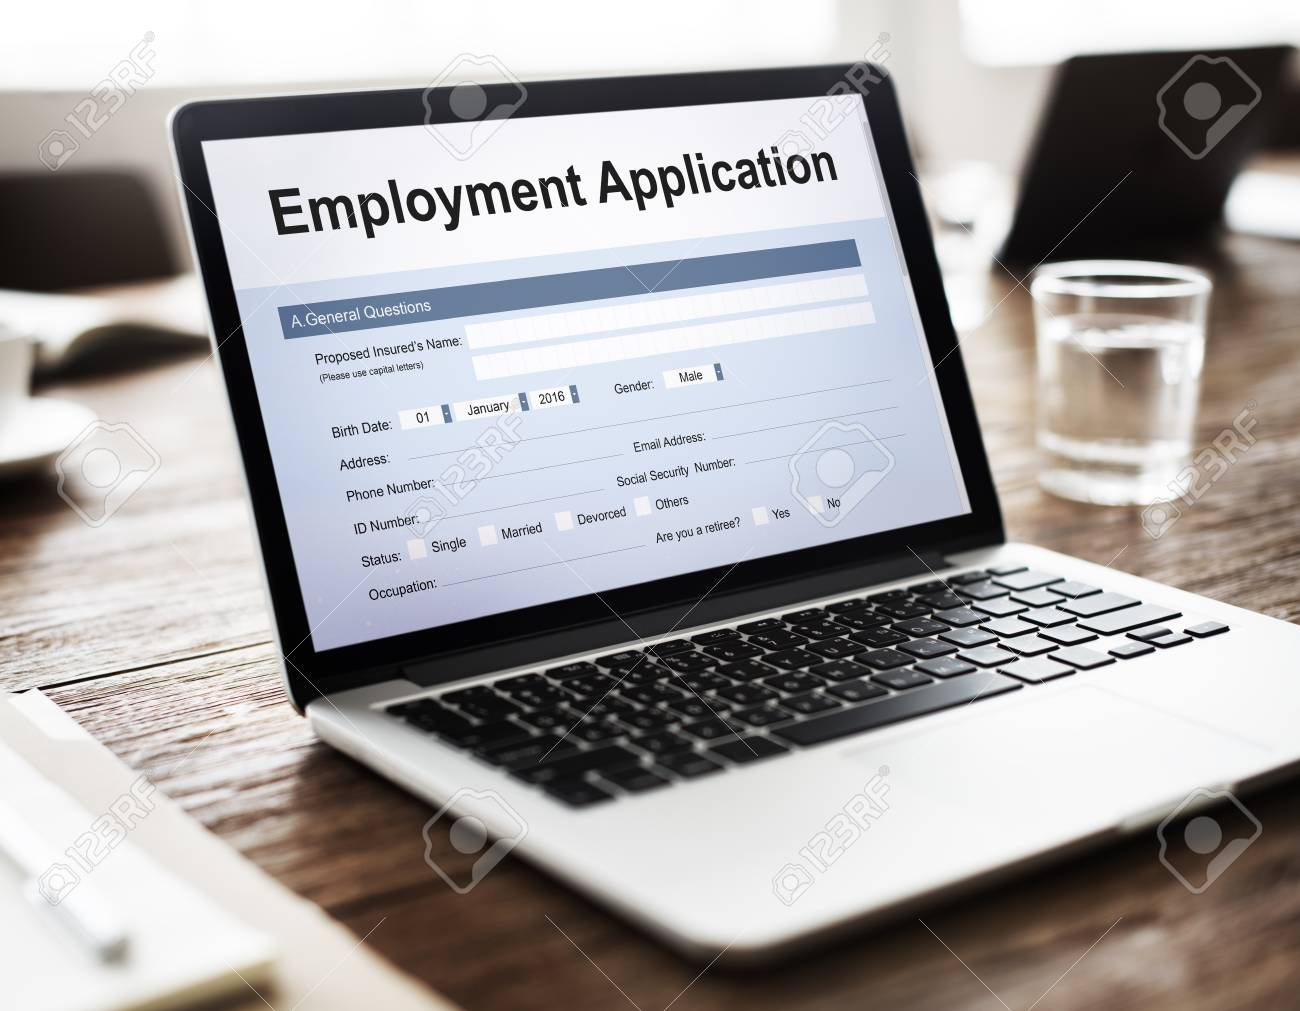 Employment Application Agreement Form Concept Stock Photo Picture